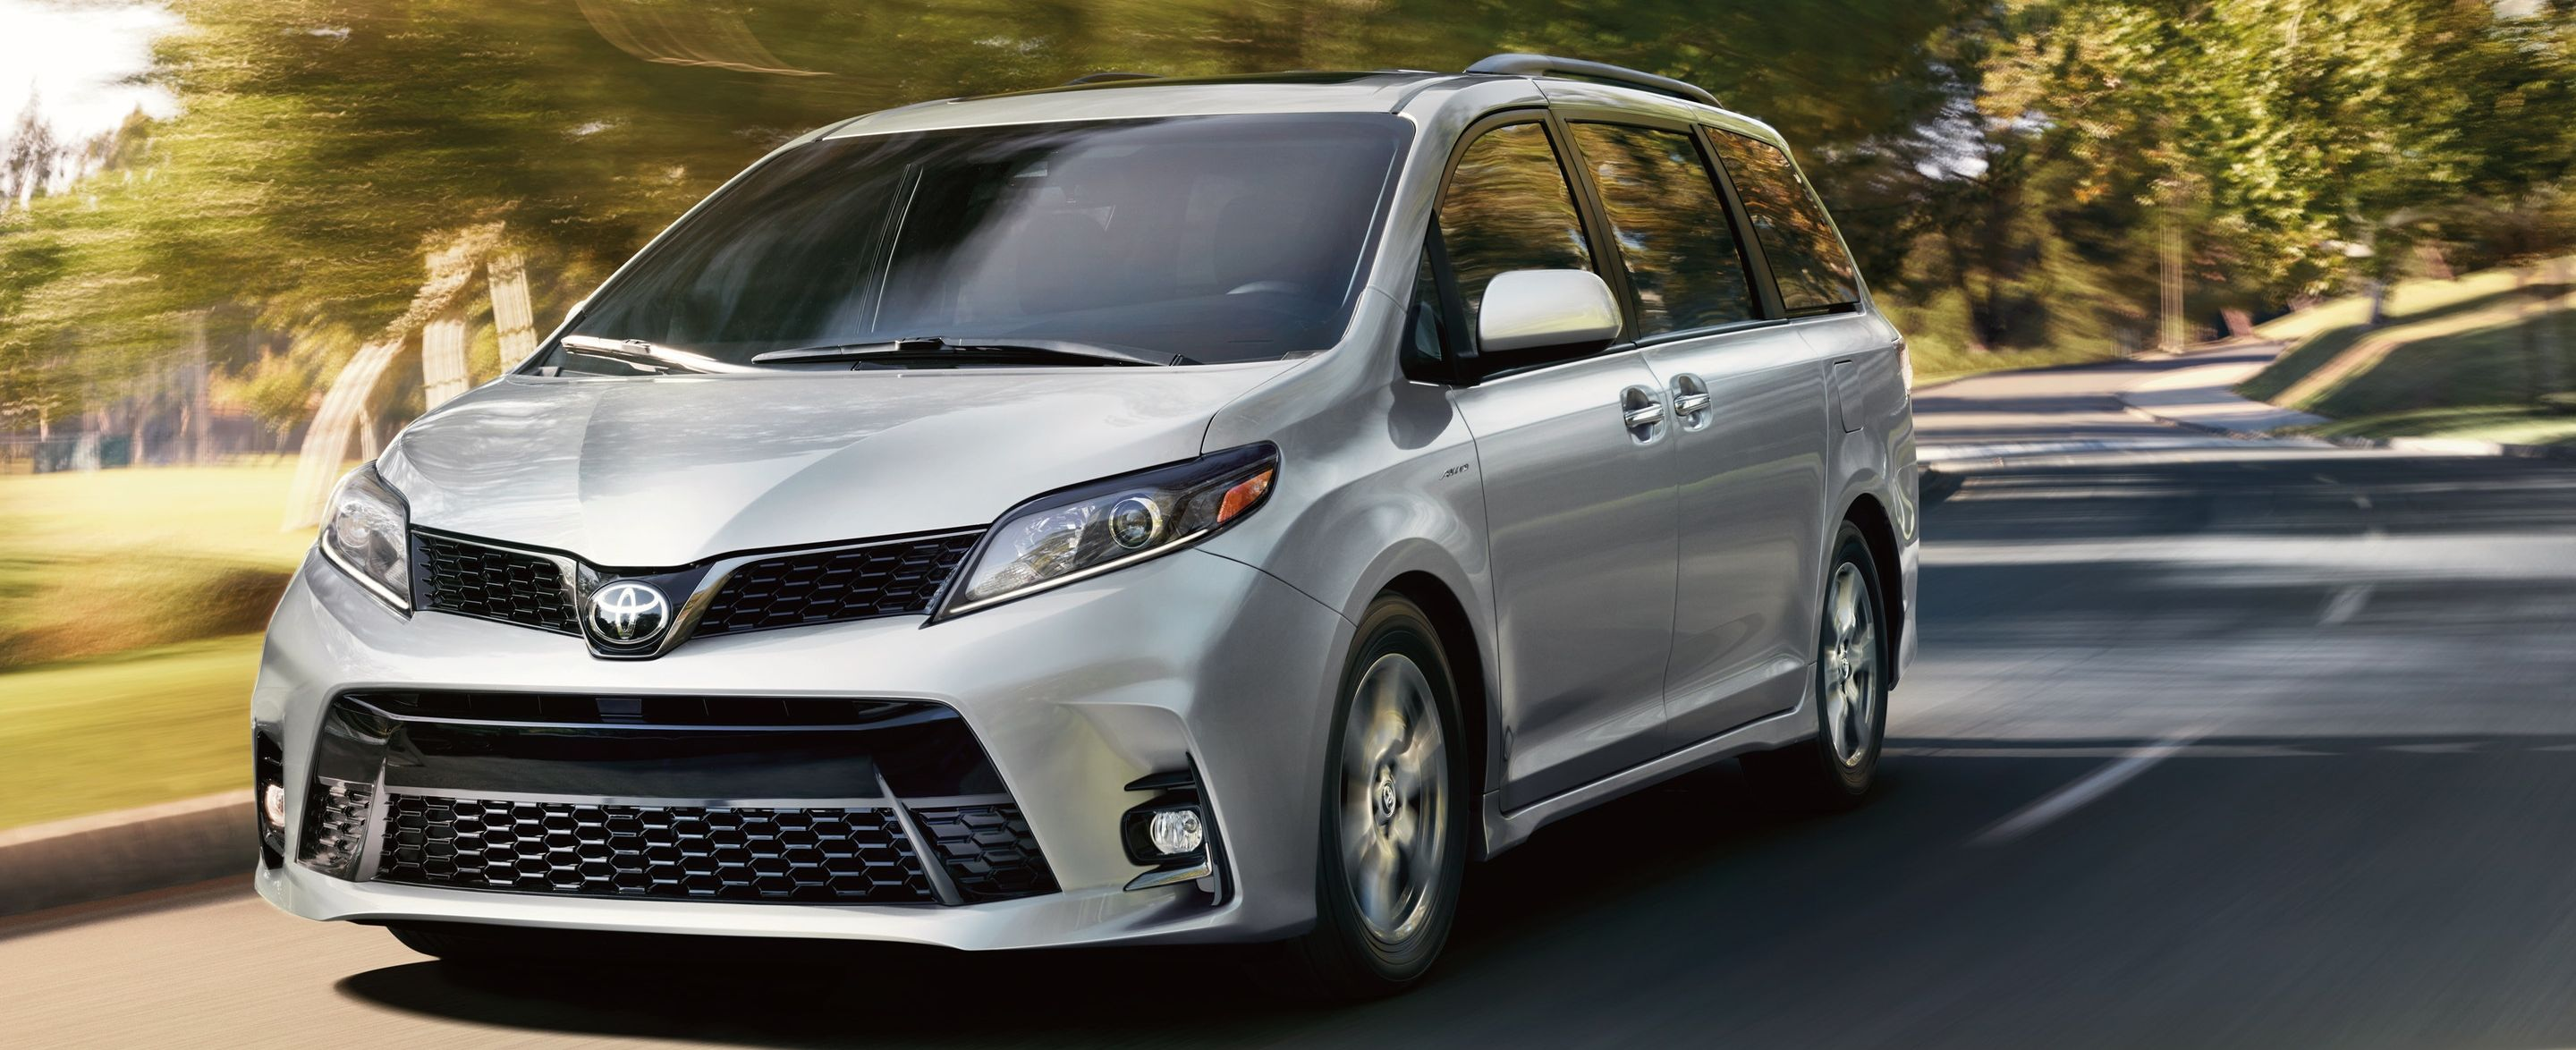 93 New Toyota Minivan 2020 Price and Review with Toyota Minivan 2020